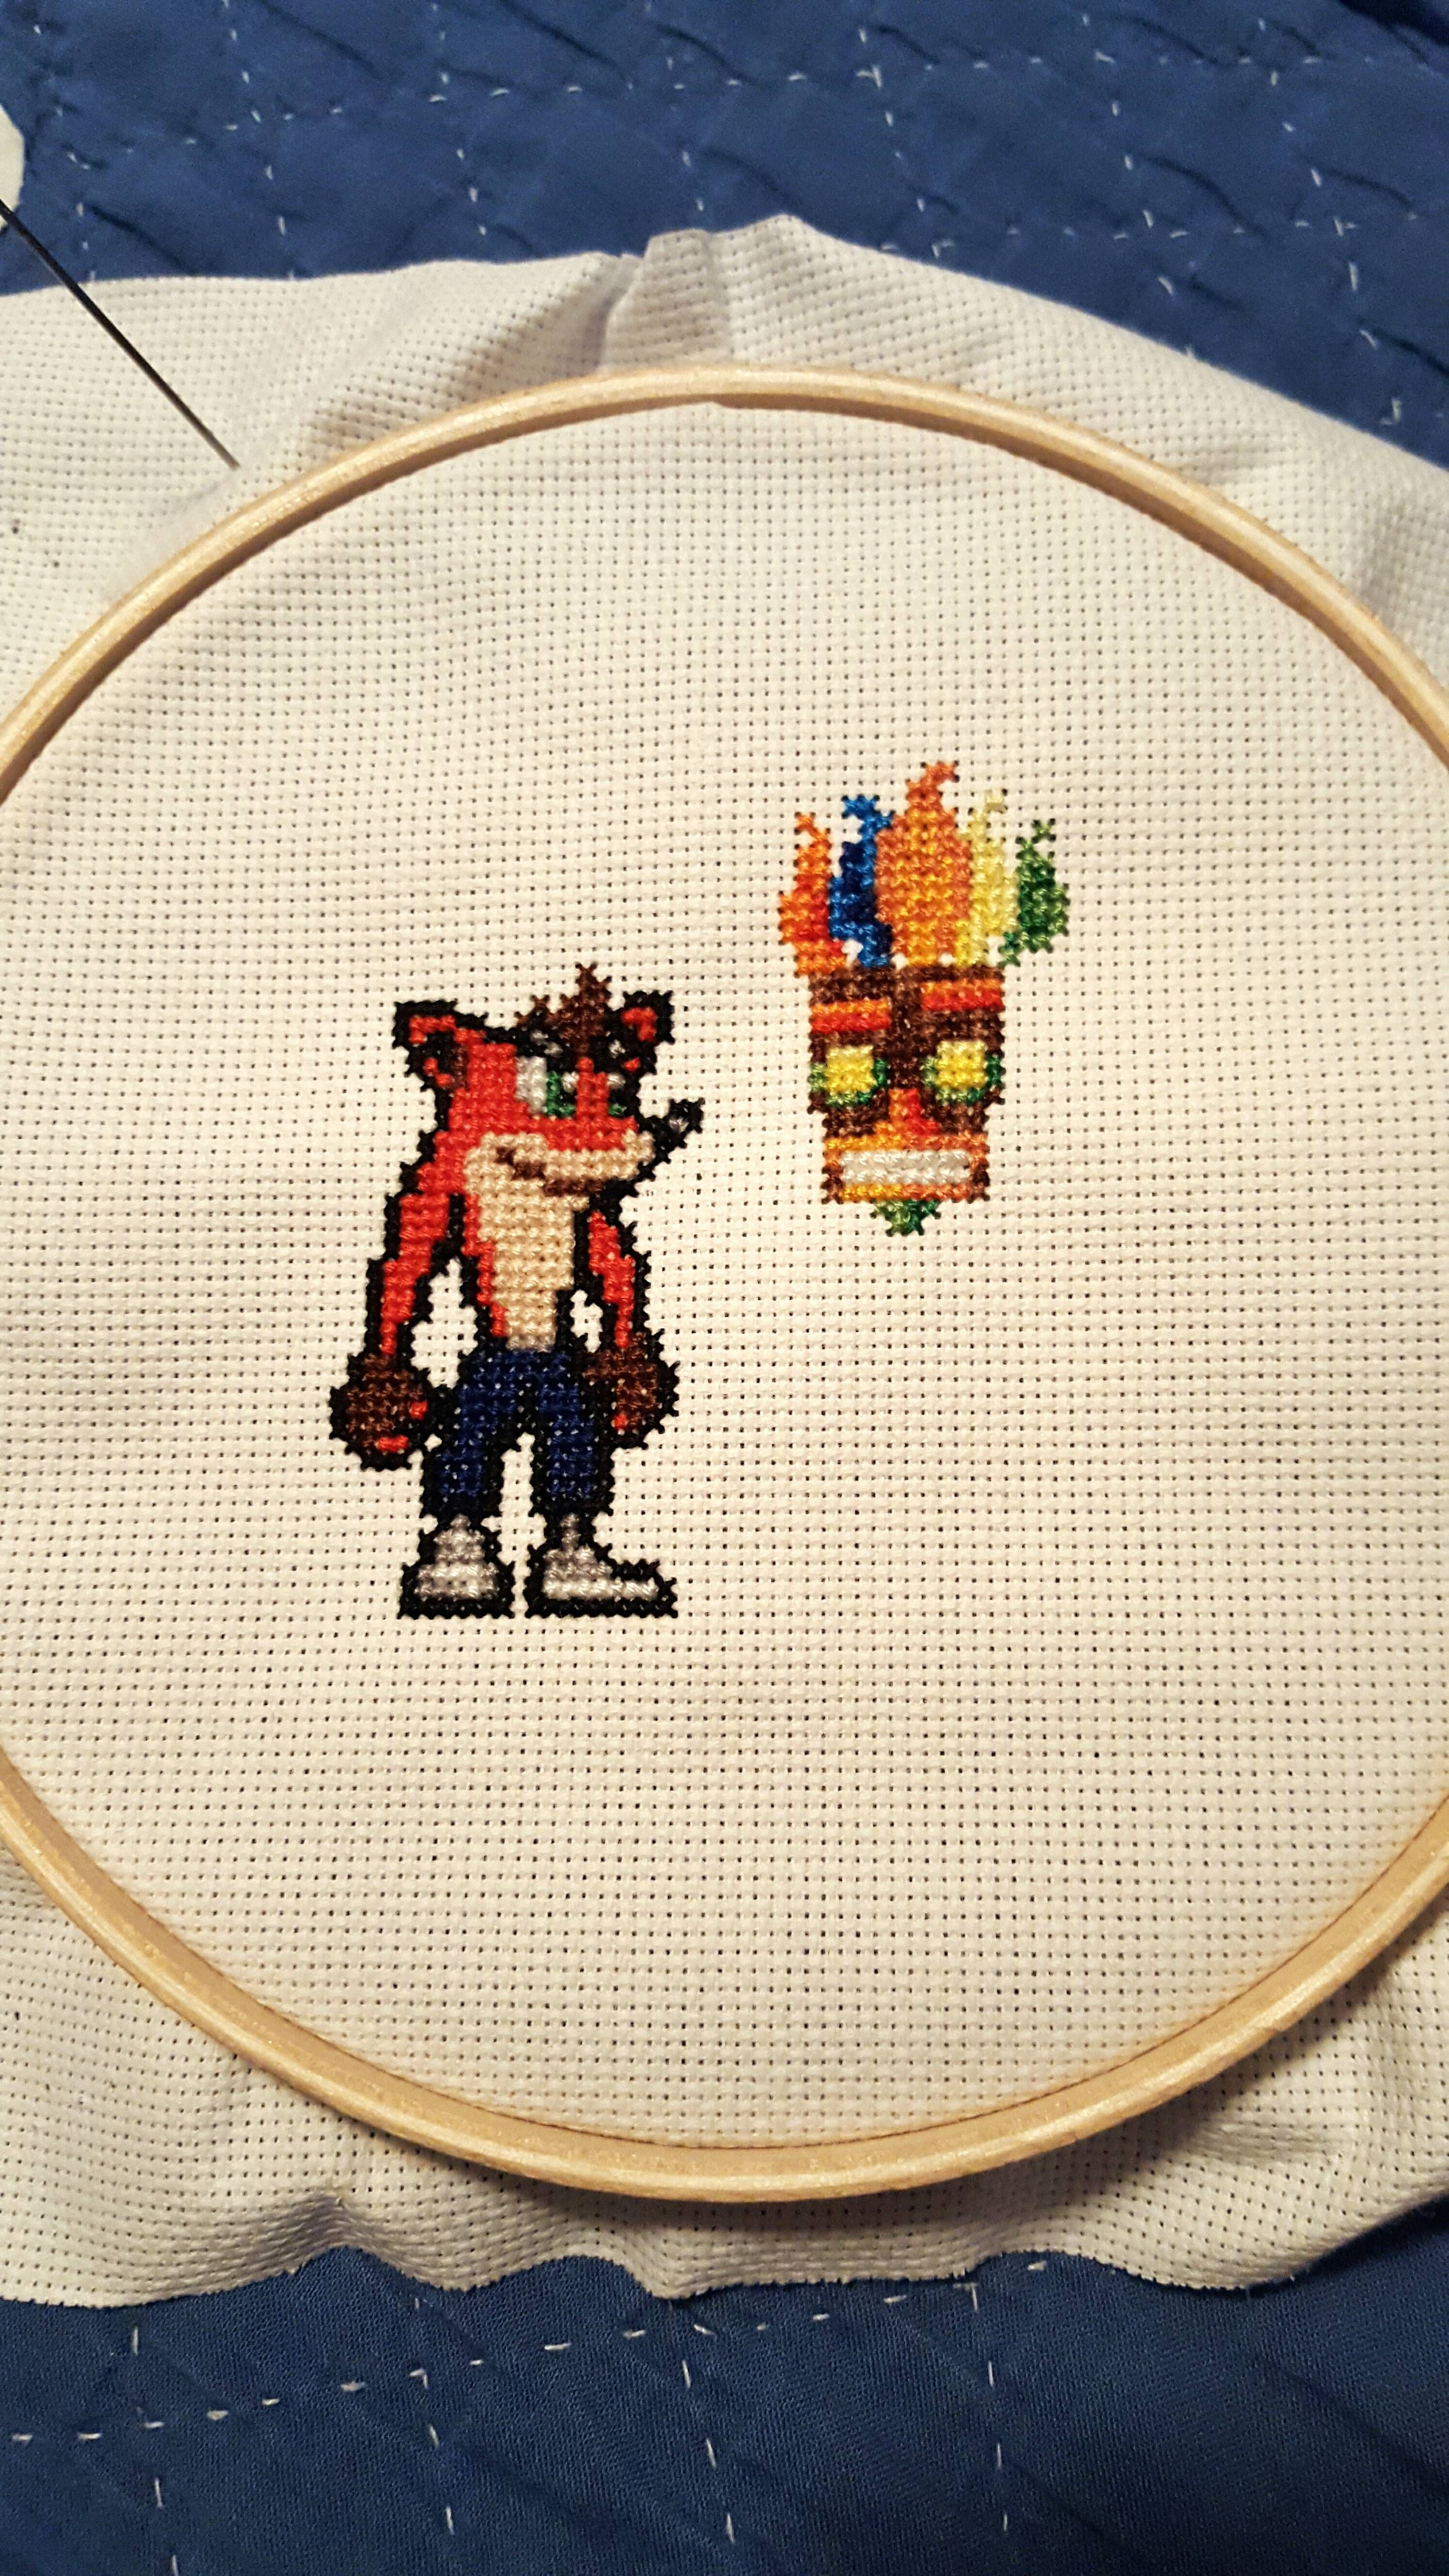 The cross-stitch embroidery of the dragon will carry luck all year round